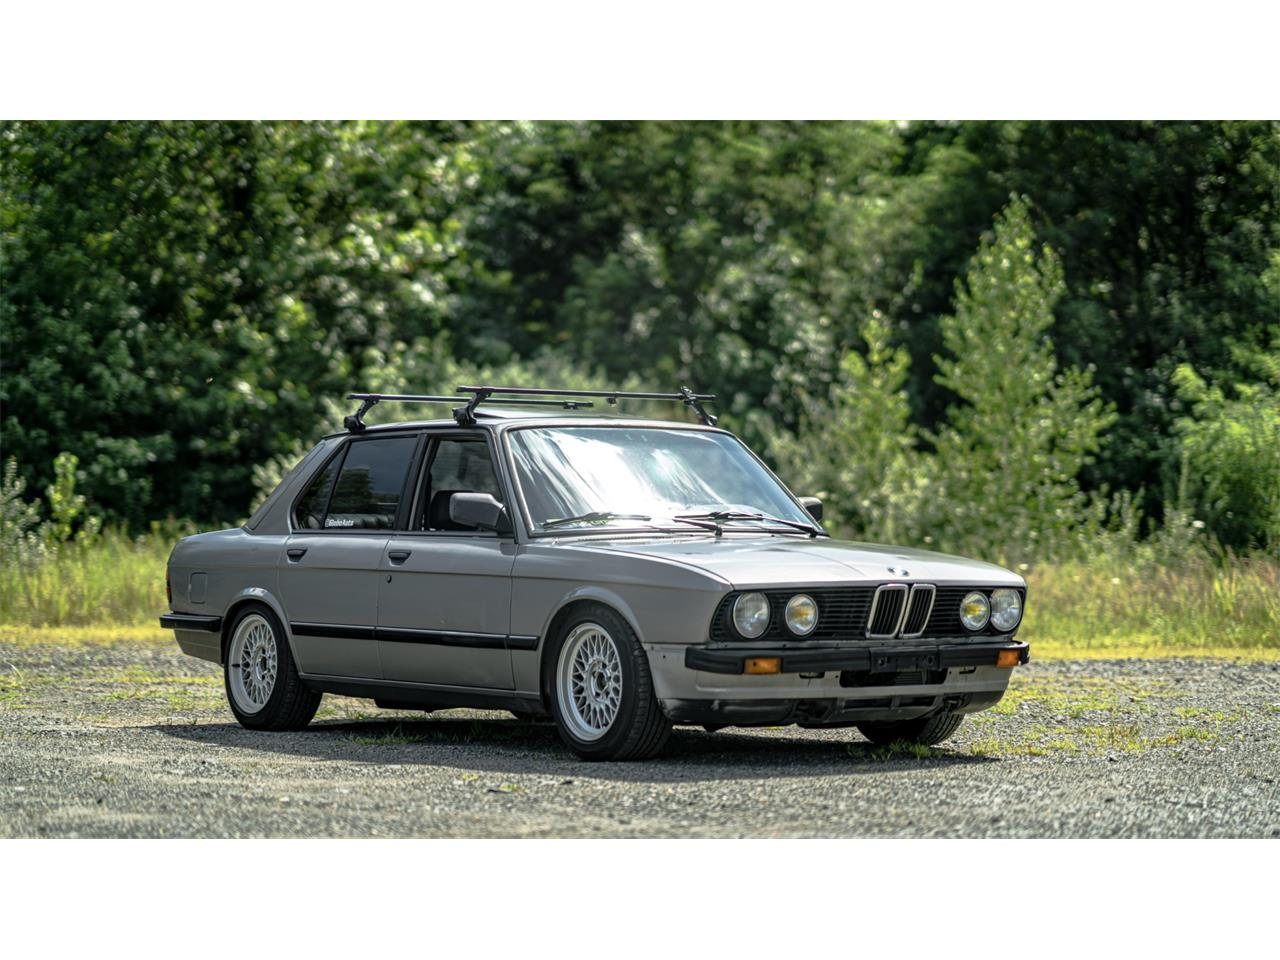 1988 BMW 528e for sale in South River, NJ